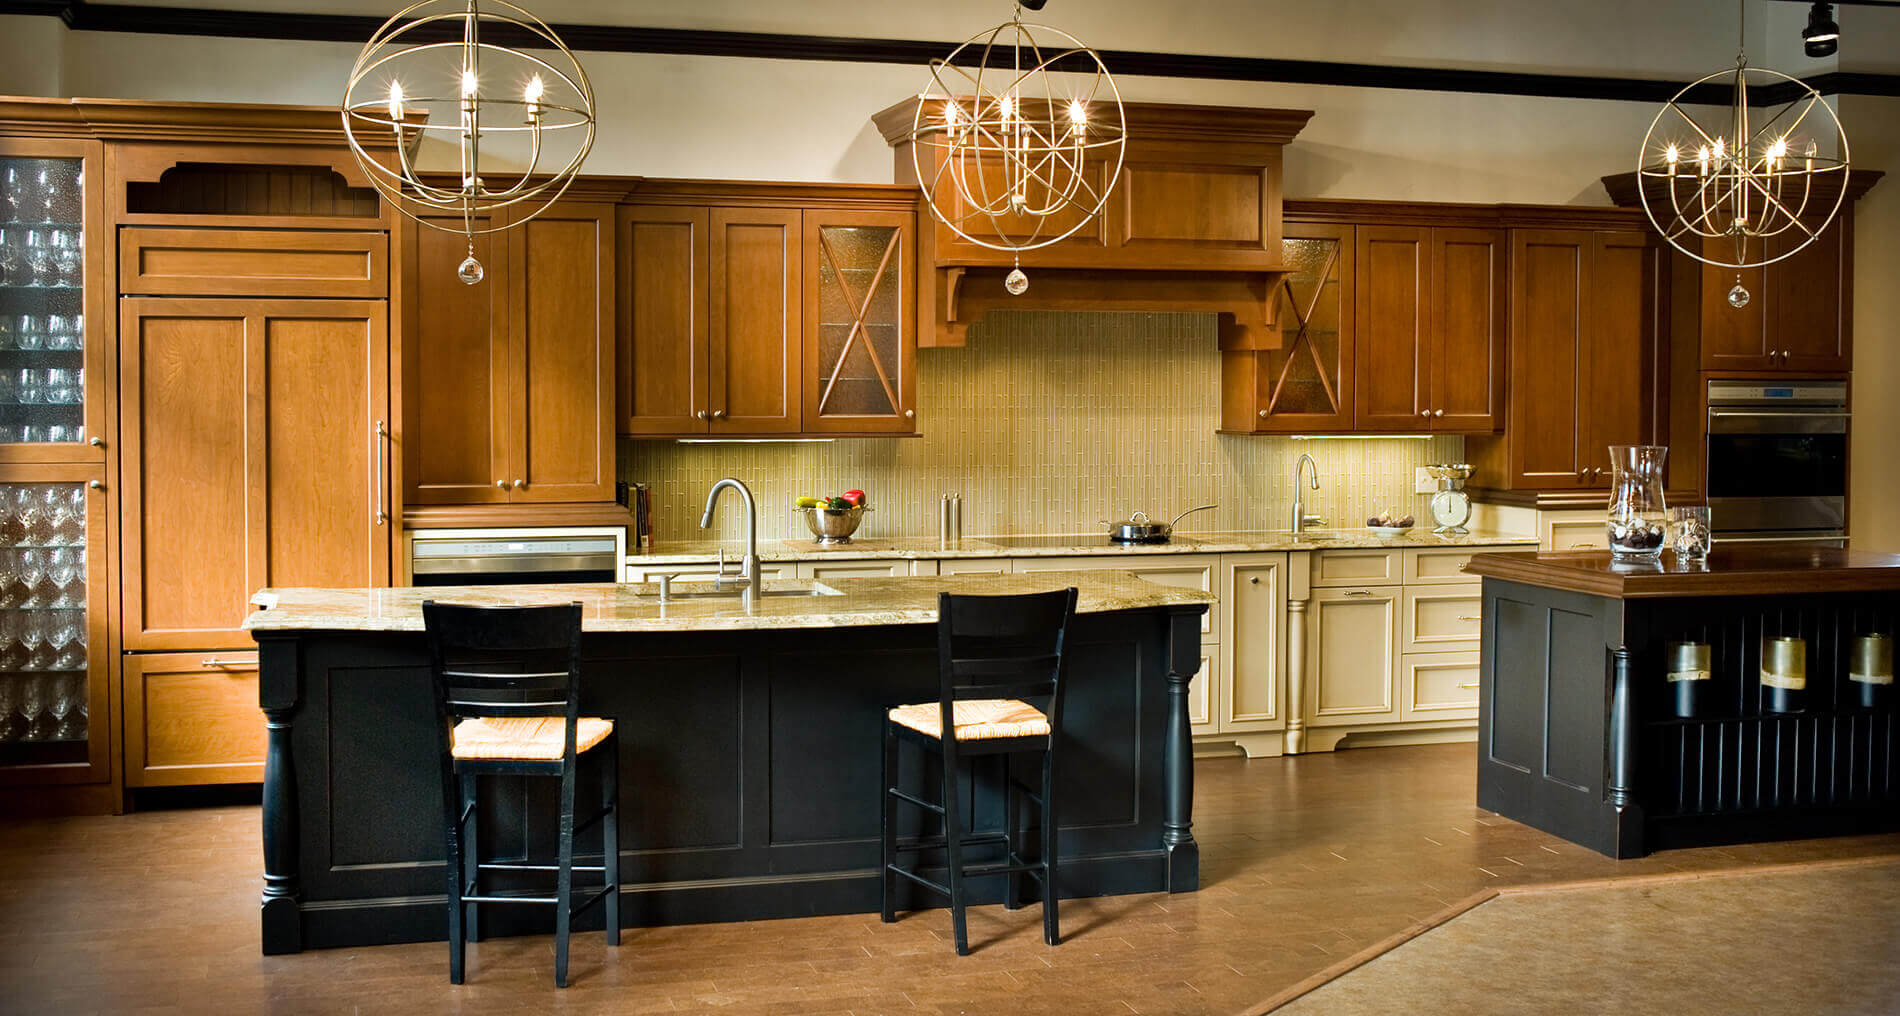 Top Kitchen Design And Build Center in Westborough Massachusetts